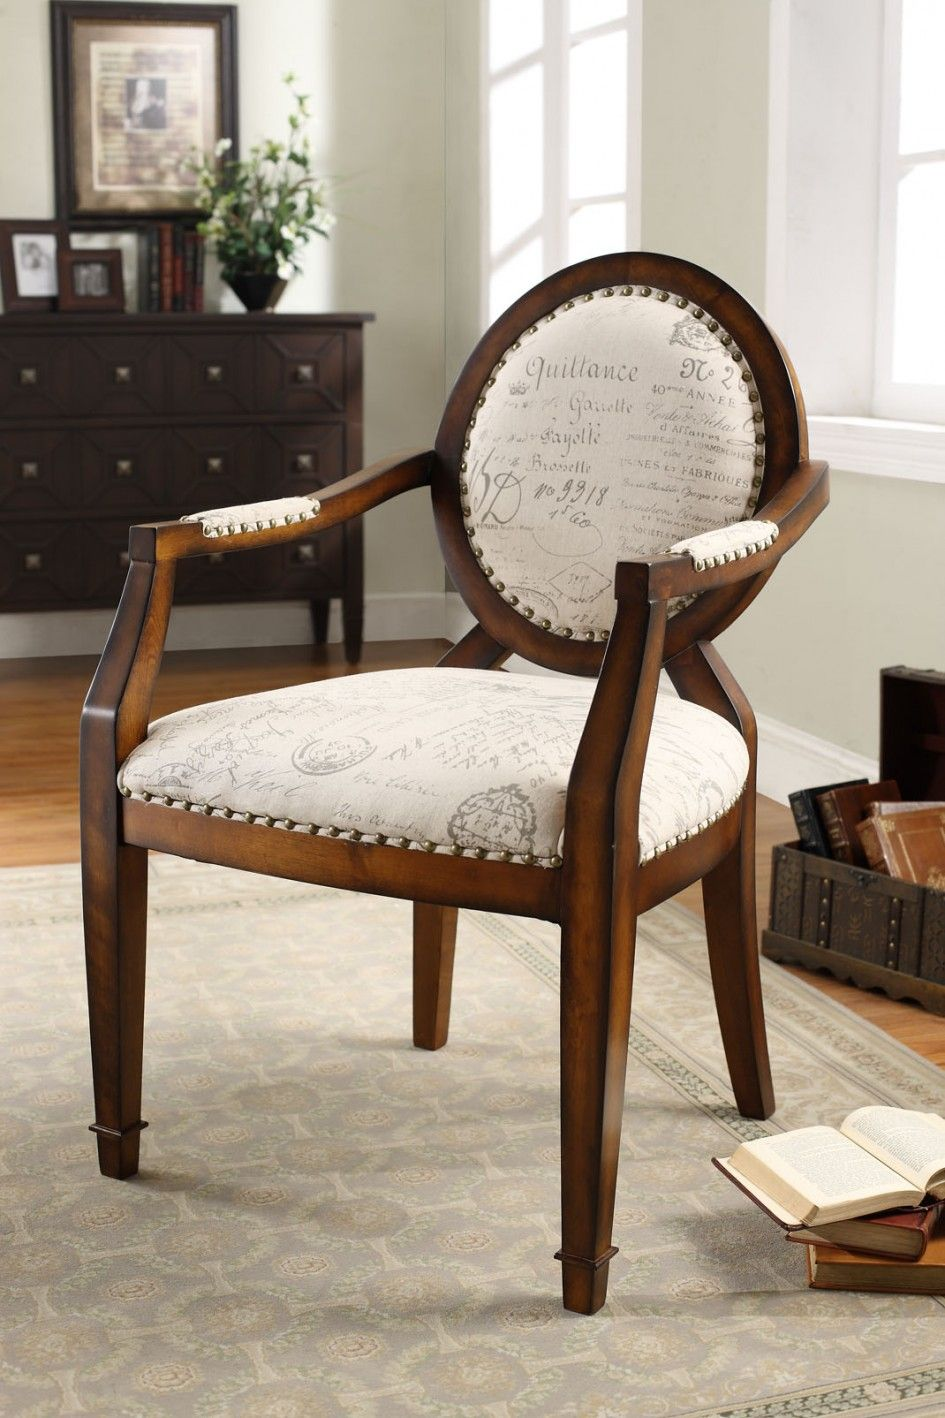 Furniture Vintage Wooden Occasional Chair For Living Room Choosing The Appropriate Occasional Chairs For The Living Room Furniture For Small Living Room Occasi